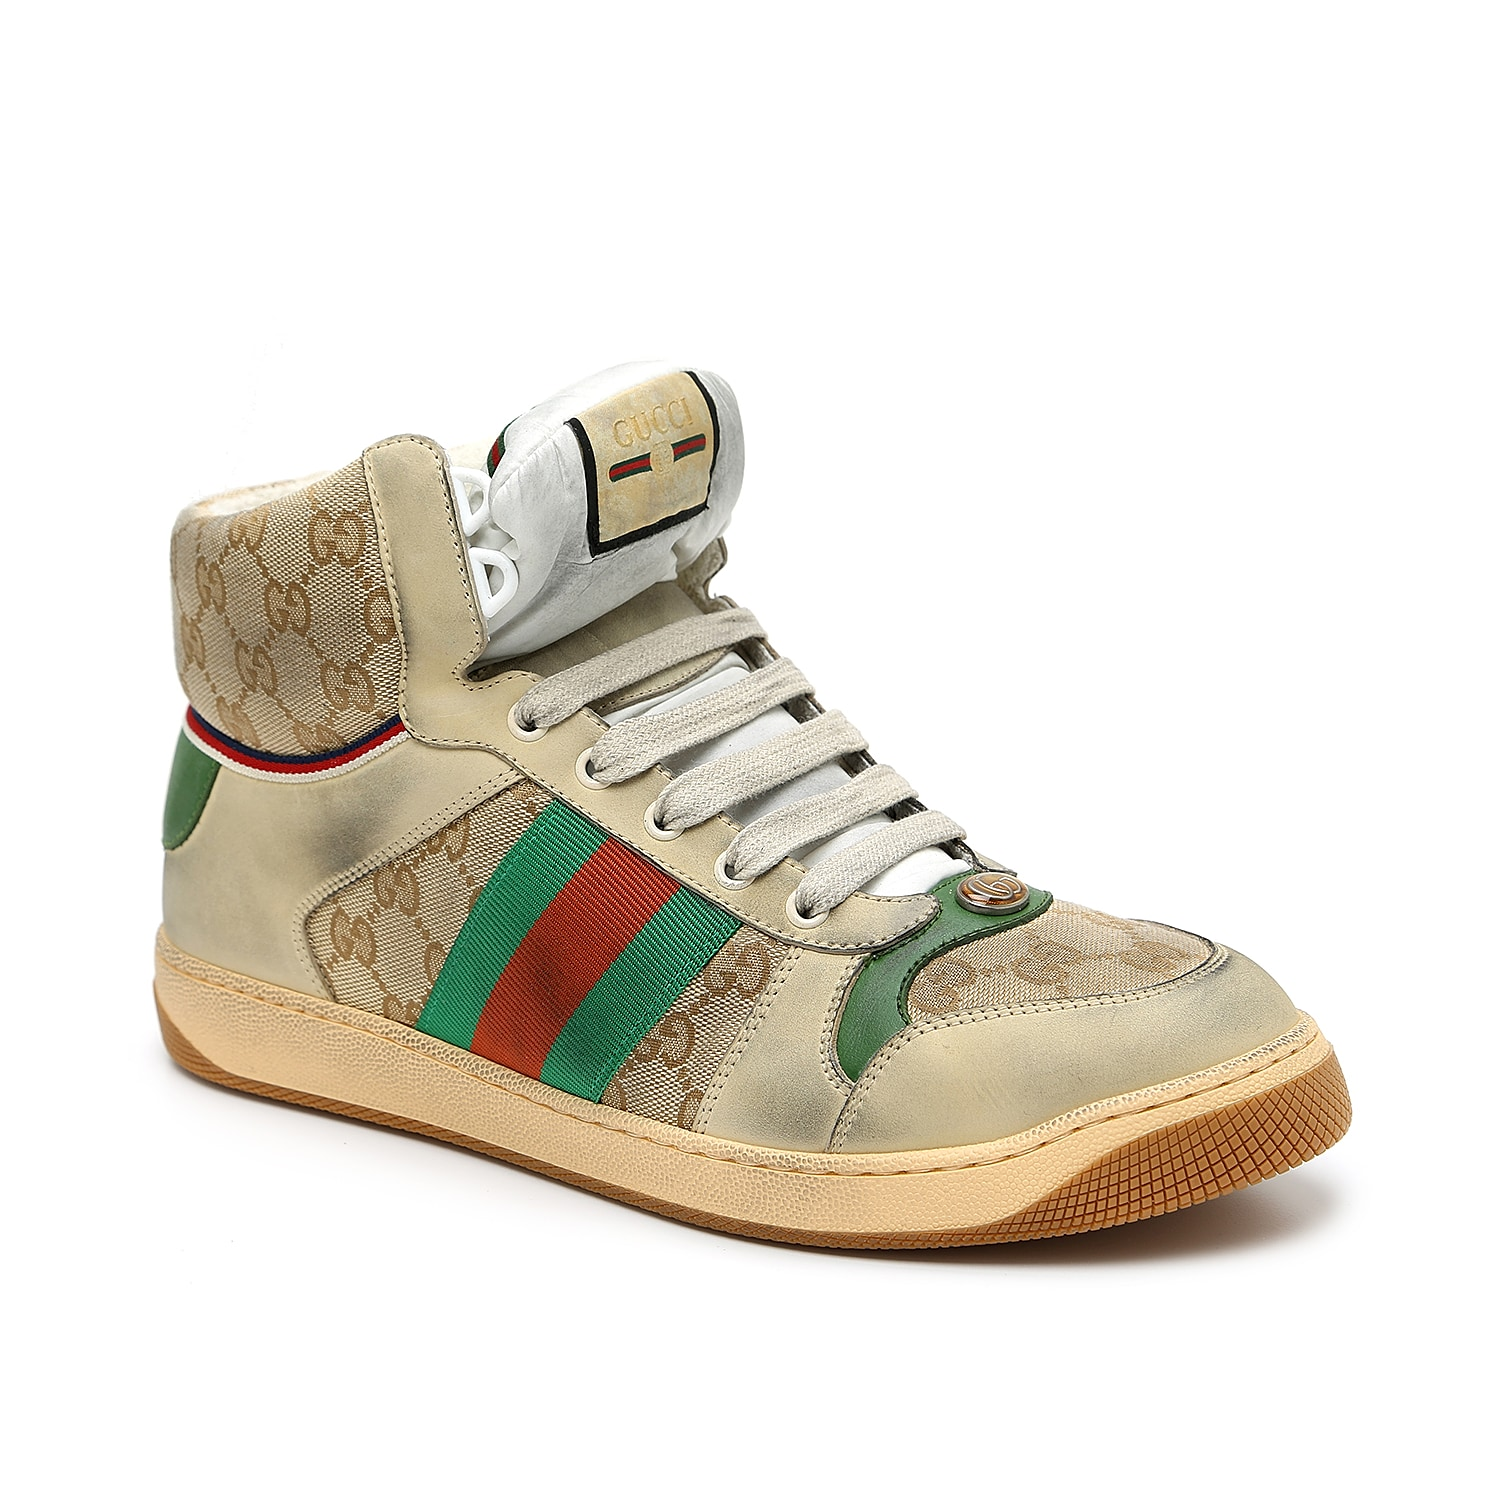 A luxury basketball sneaker designed for off-court power moves, the Screener is a Gucci original that remixes tradition with current trends. The interlocking GG web pattern coves the canvas paneling and padded ankle cuff, while the fashion house\\\'s signature red and green stripes punctuated the side profile in varsity style. Intentional distressing on the leather and outsole gives this pair a lived-in look but pristine logo embroidery ensures craftsmanship is not lost.  Made in Italy from carefully selected materials. To extend product life, protect from direct light, heat, and rain. Fill shoe with tissue paper to help maintain the shape and absorb humidity. Store in the provided flannel bag and structured shoe box.